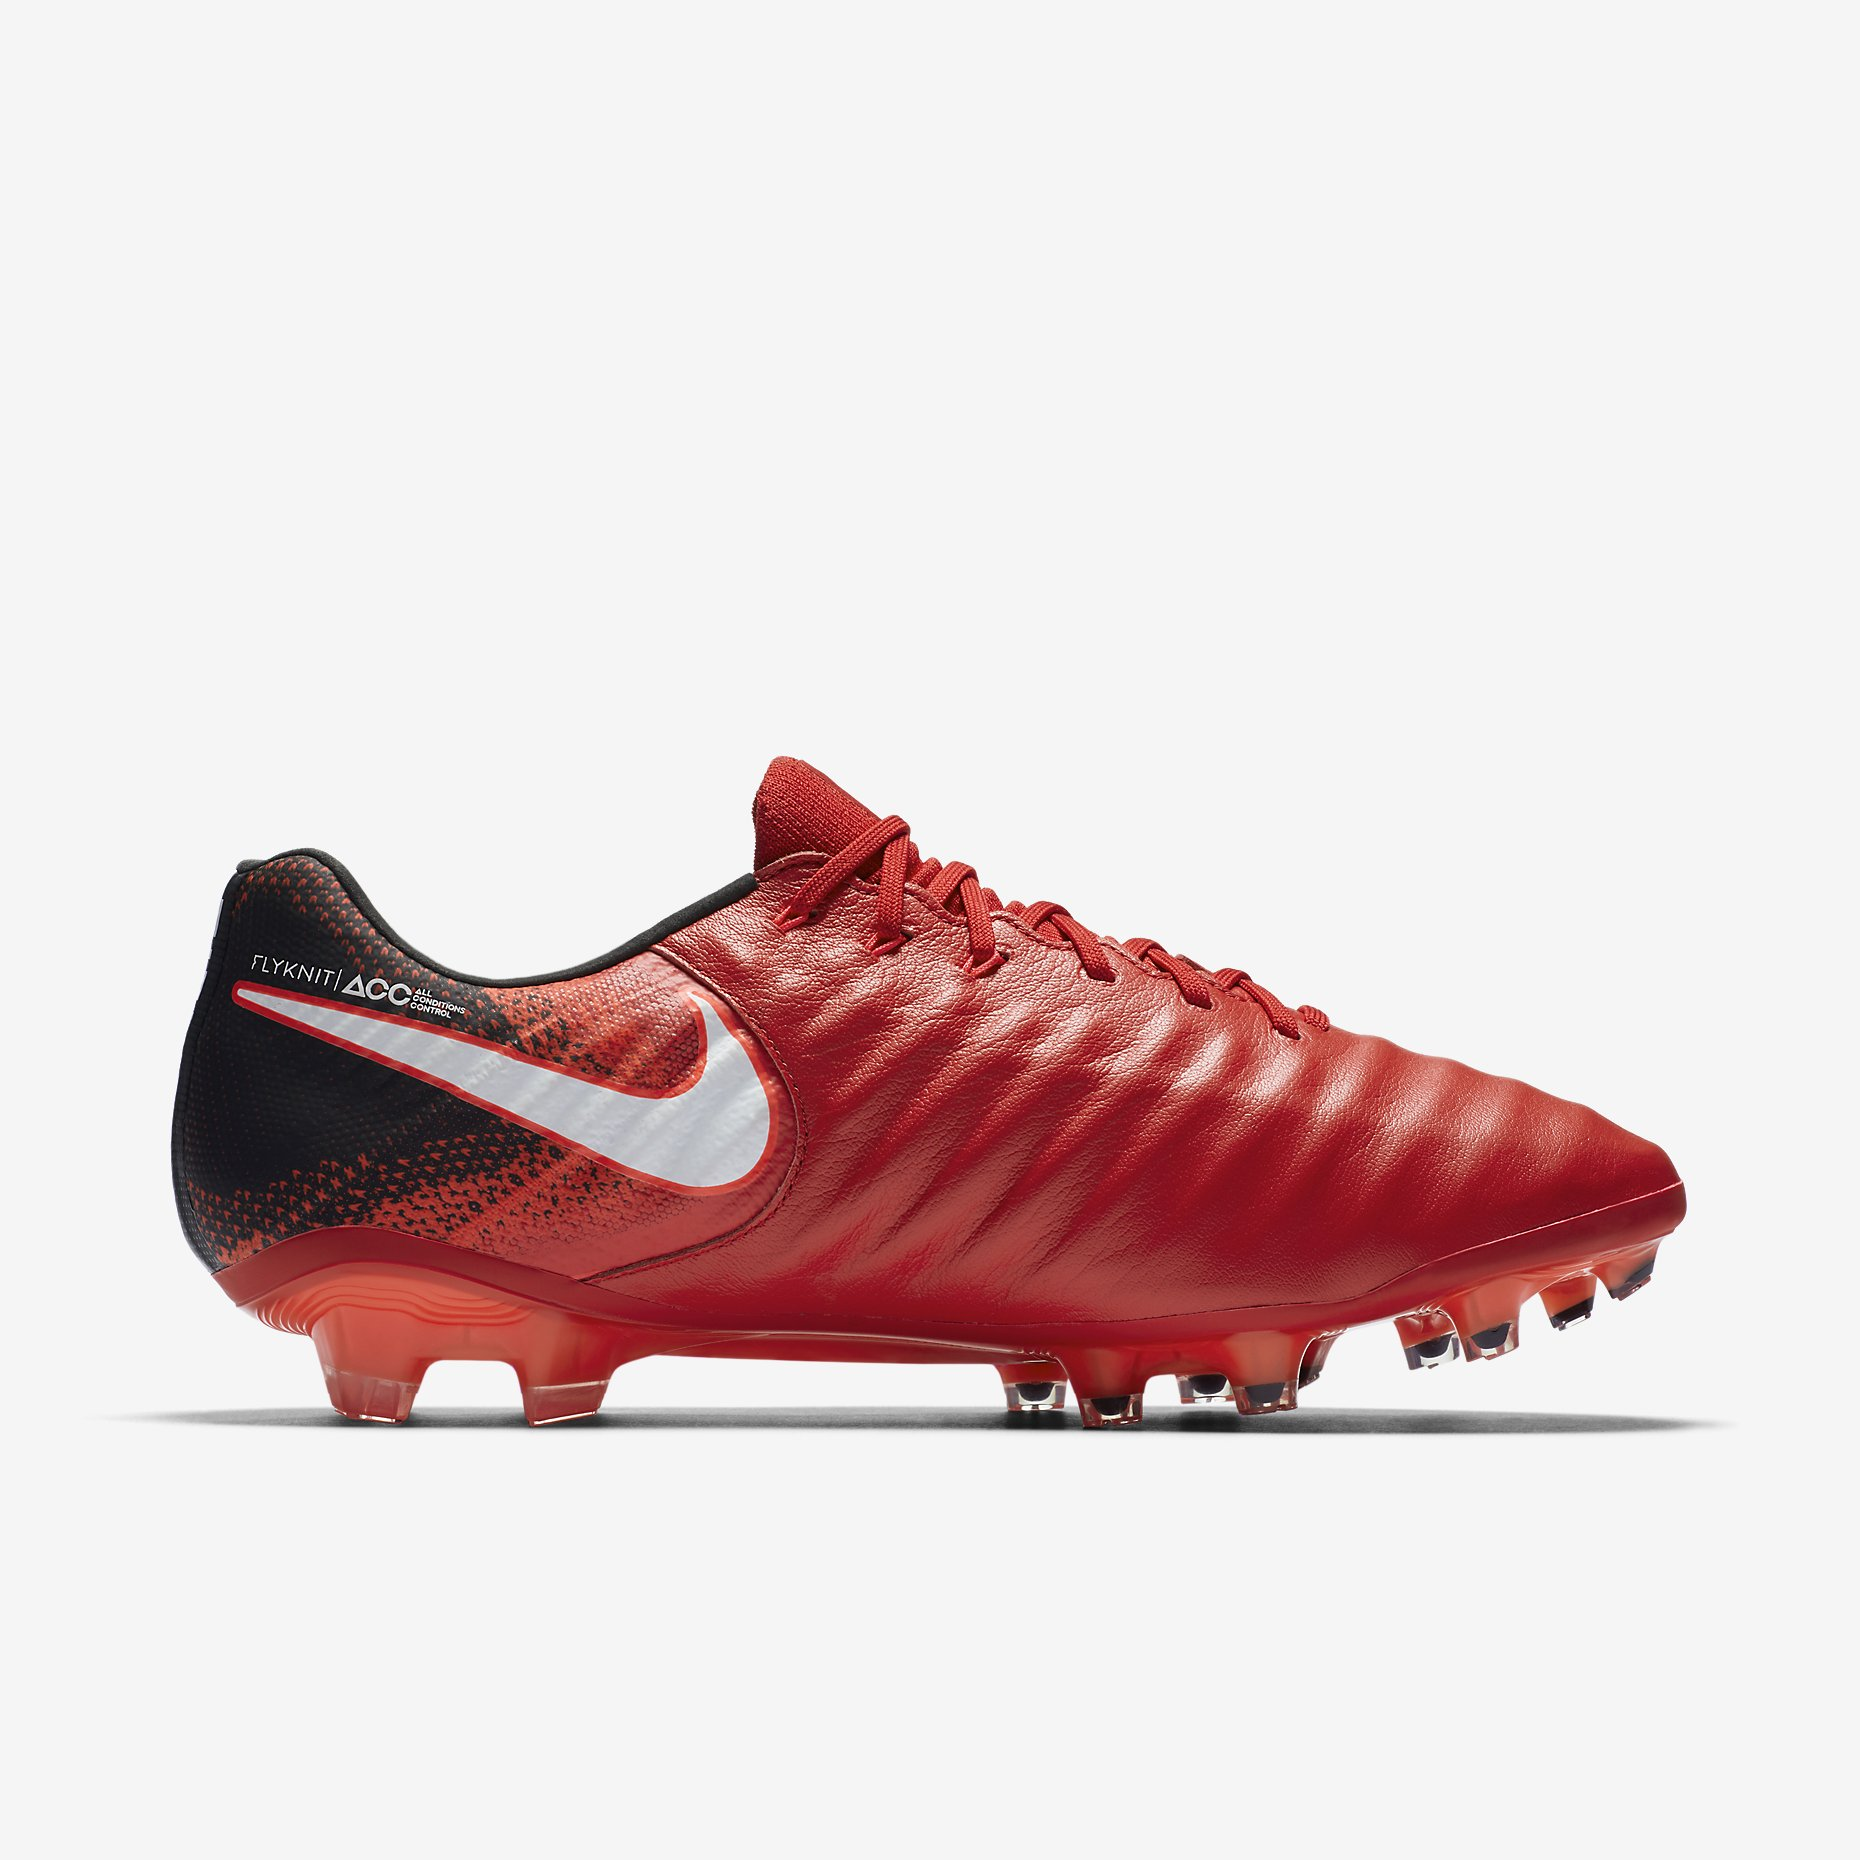 reputable site 4afe0 af60b Nike Tiempo Legend VII FG Fire & Ice - University Red ...